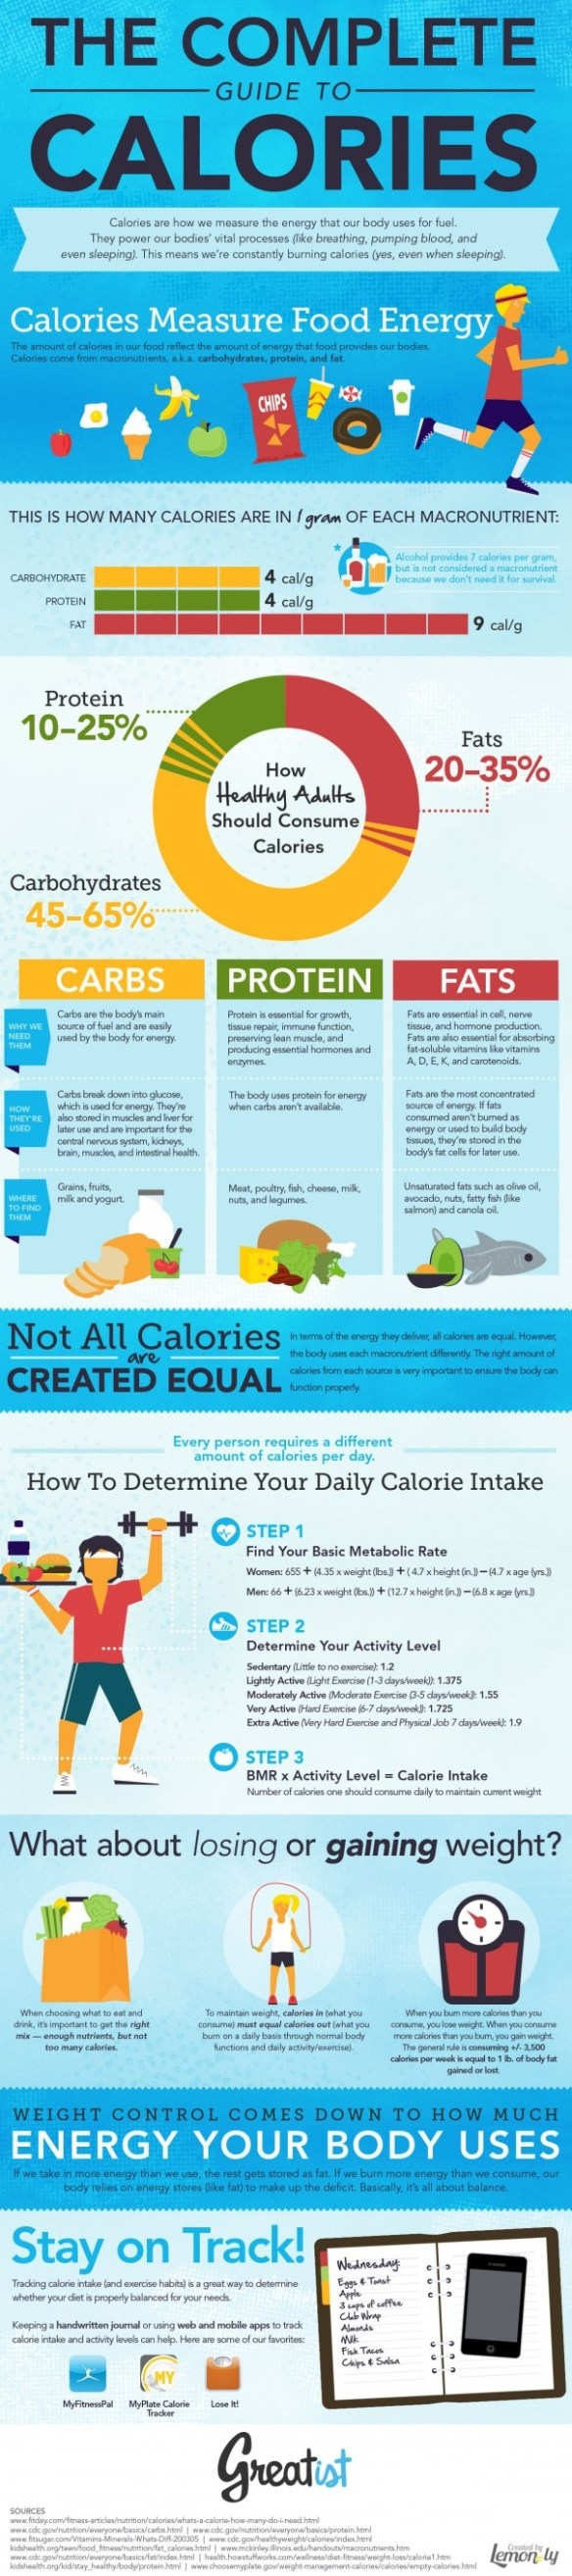 The Complete Guide to Calories #weightloss